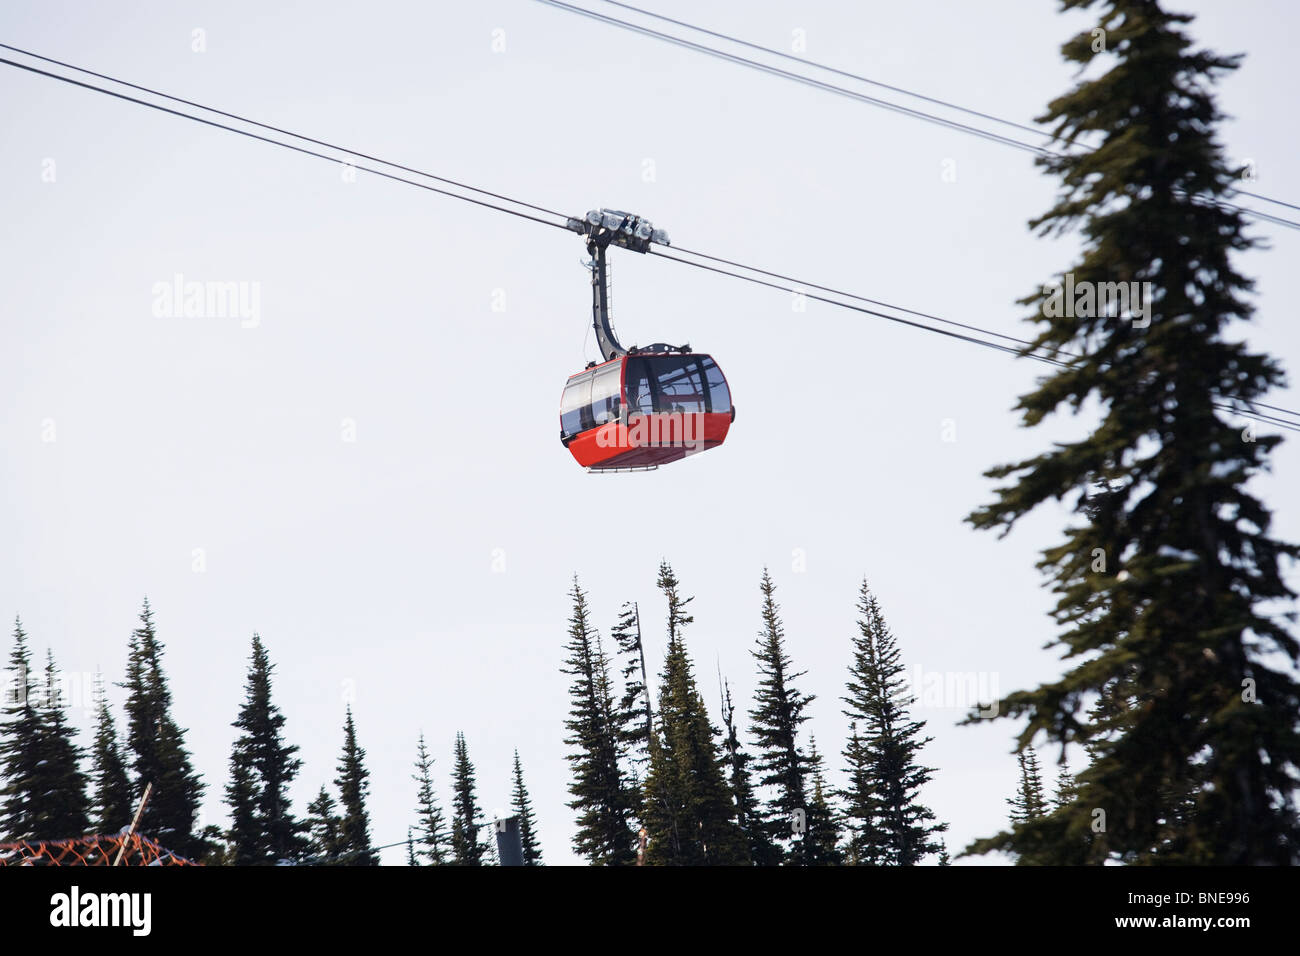 Gondola at Whistler ski resort. Stock Photo